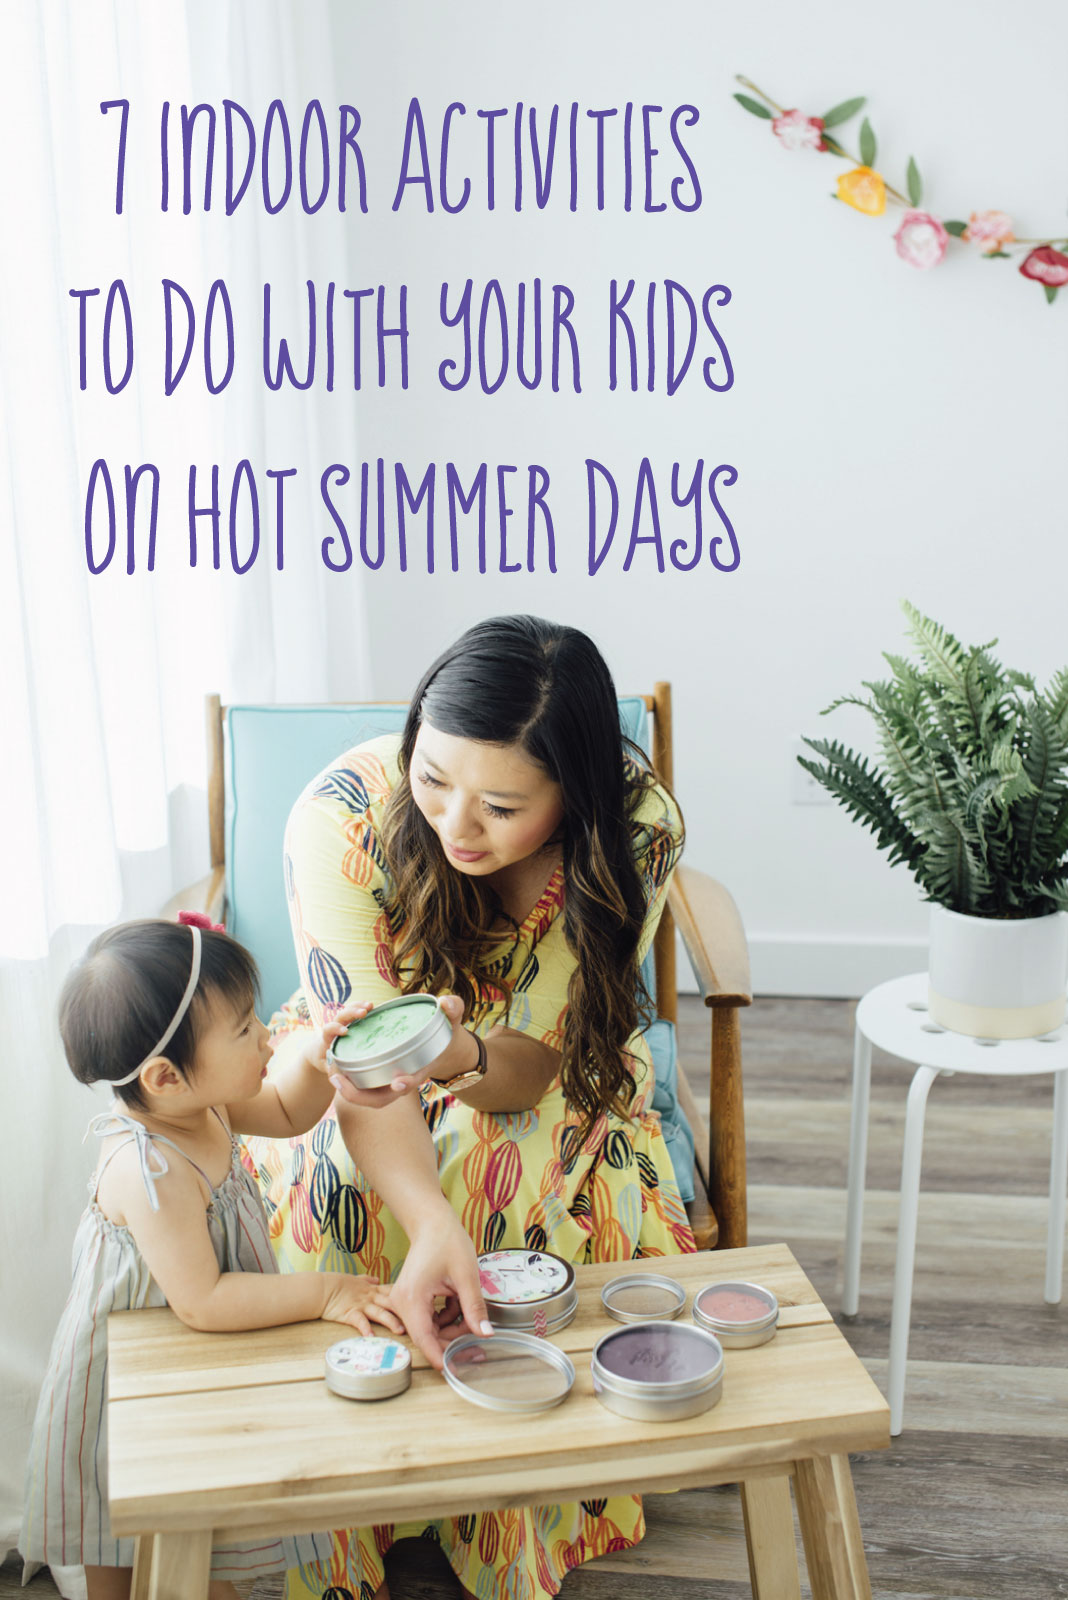 7 Indoor Activities To Do With Your Kids On Hot Summer Days